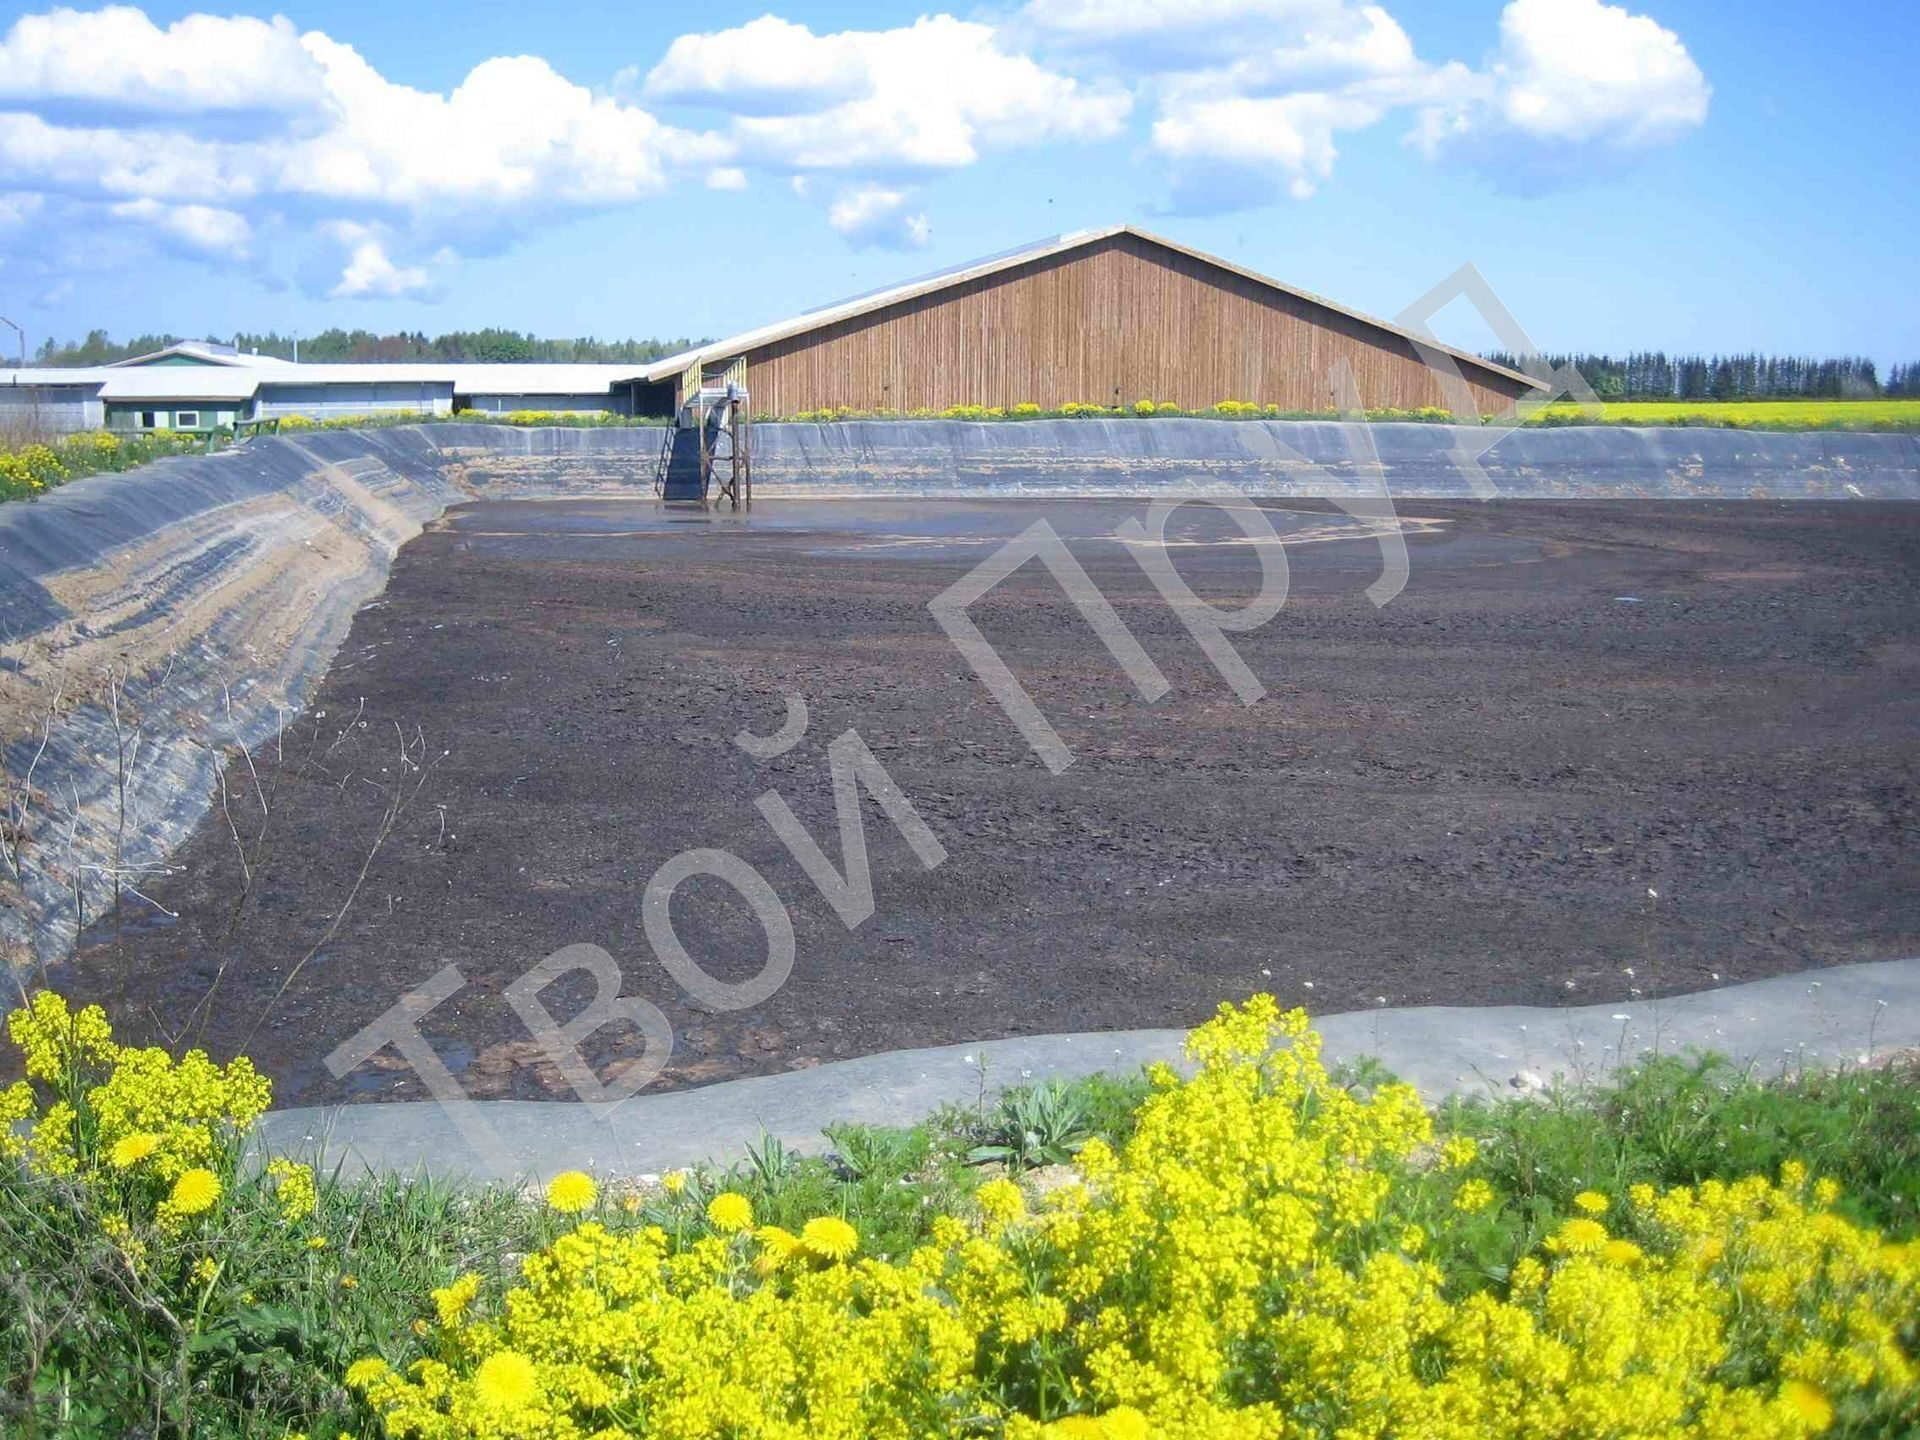 epdm_geo_-_dung_pits_-_estonia_-_hydroseal_-_animal_waste_facility_1_-_96_dpi